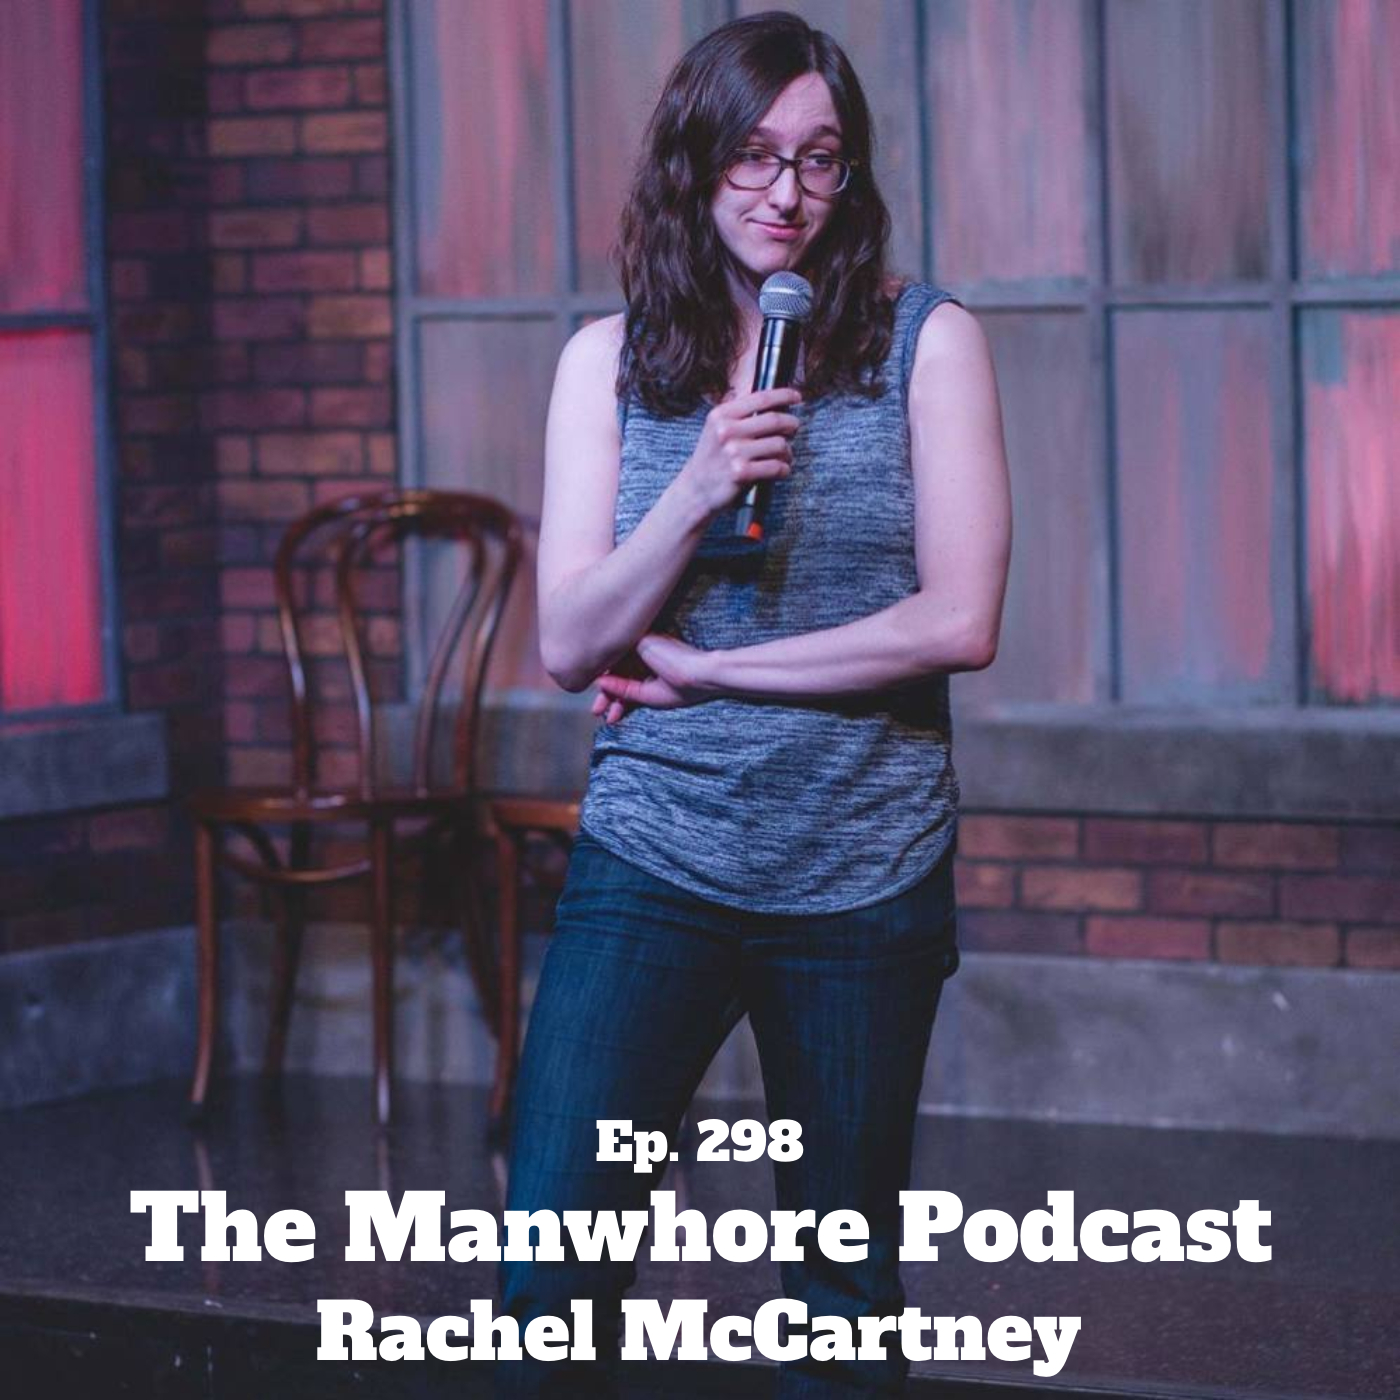 The Manwhore Podcast: A Sex-Positive Quest - Ep. 298: Chasing Amy, Biphobic Tweets, and College Girls with Rachel McCartney